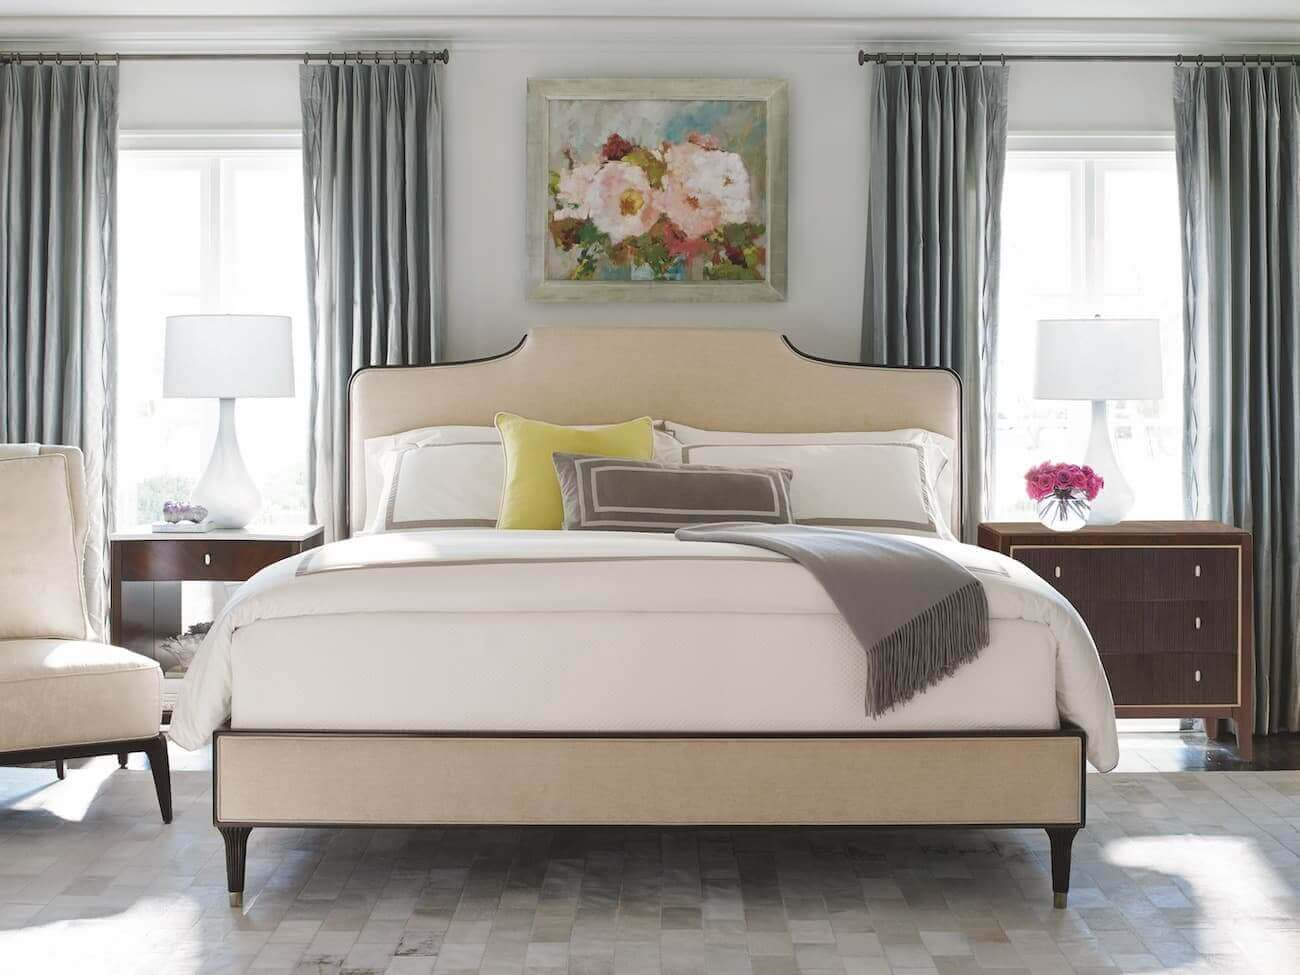 Bedroom-Caracole-Easy-on-the-Eyes-Bed-Transitional